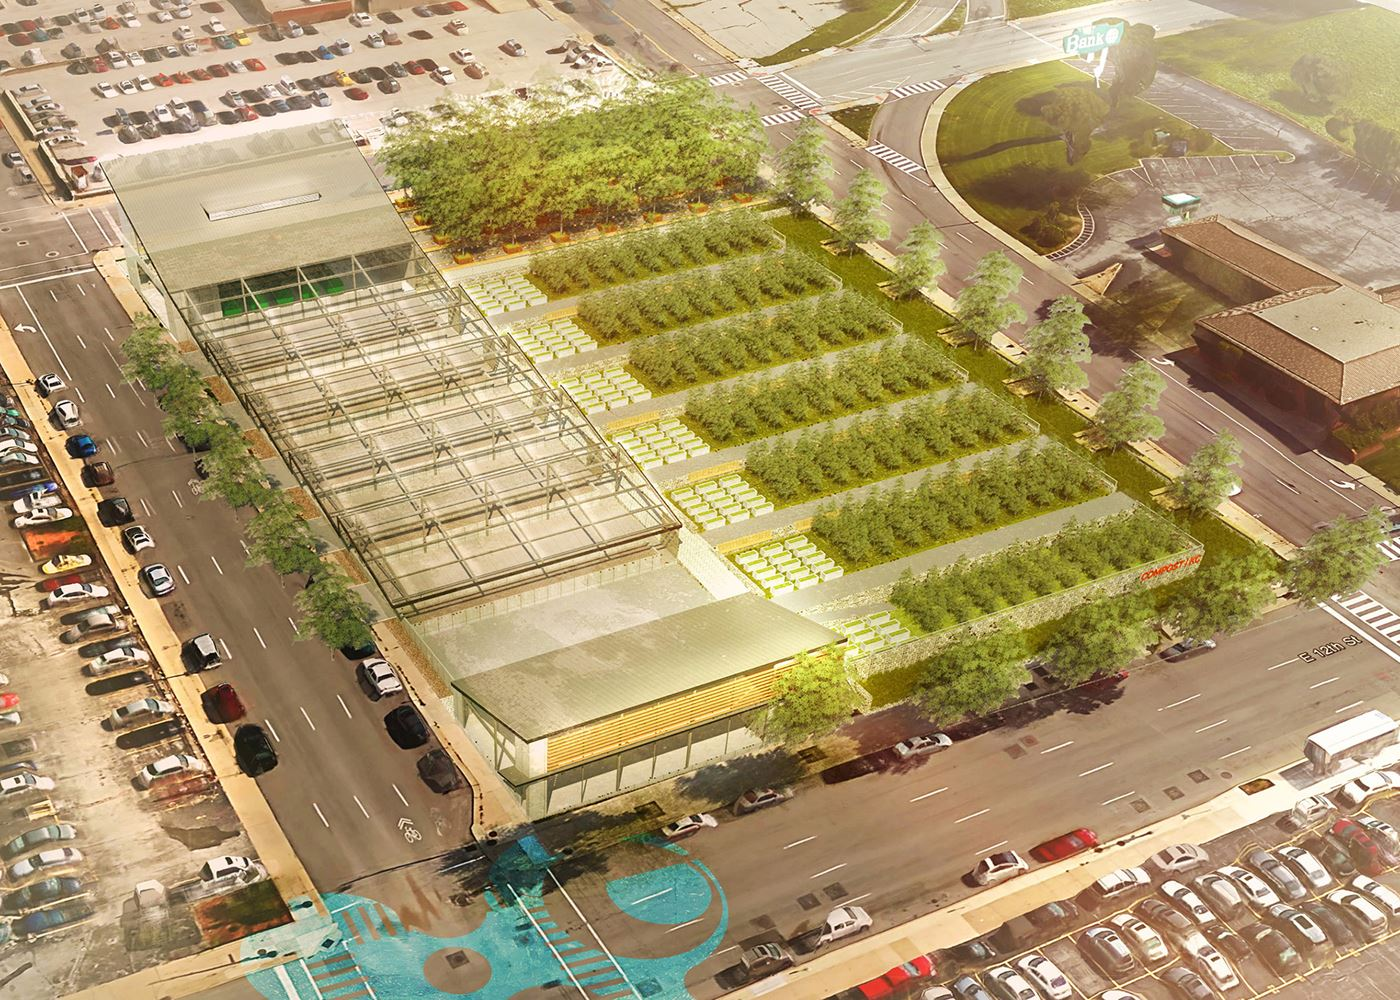 Aia kansas city concept merit for Household waste recycling centre design